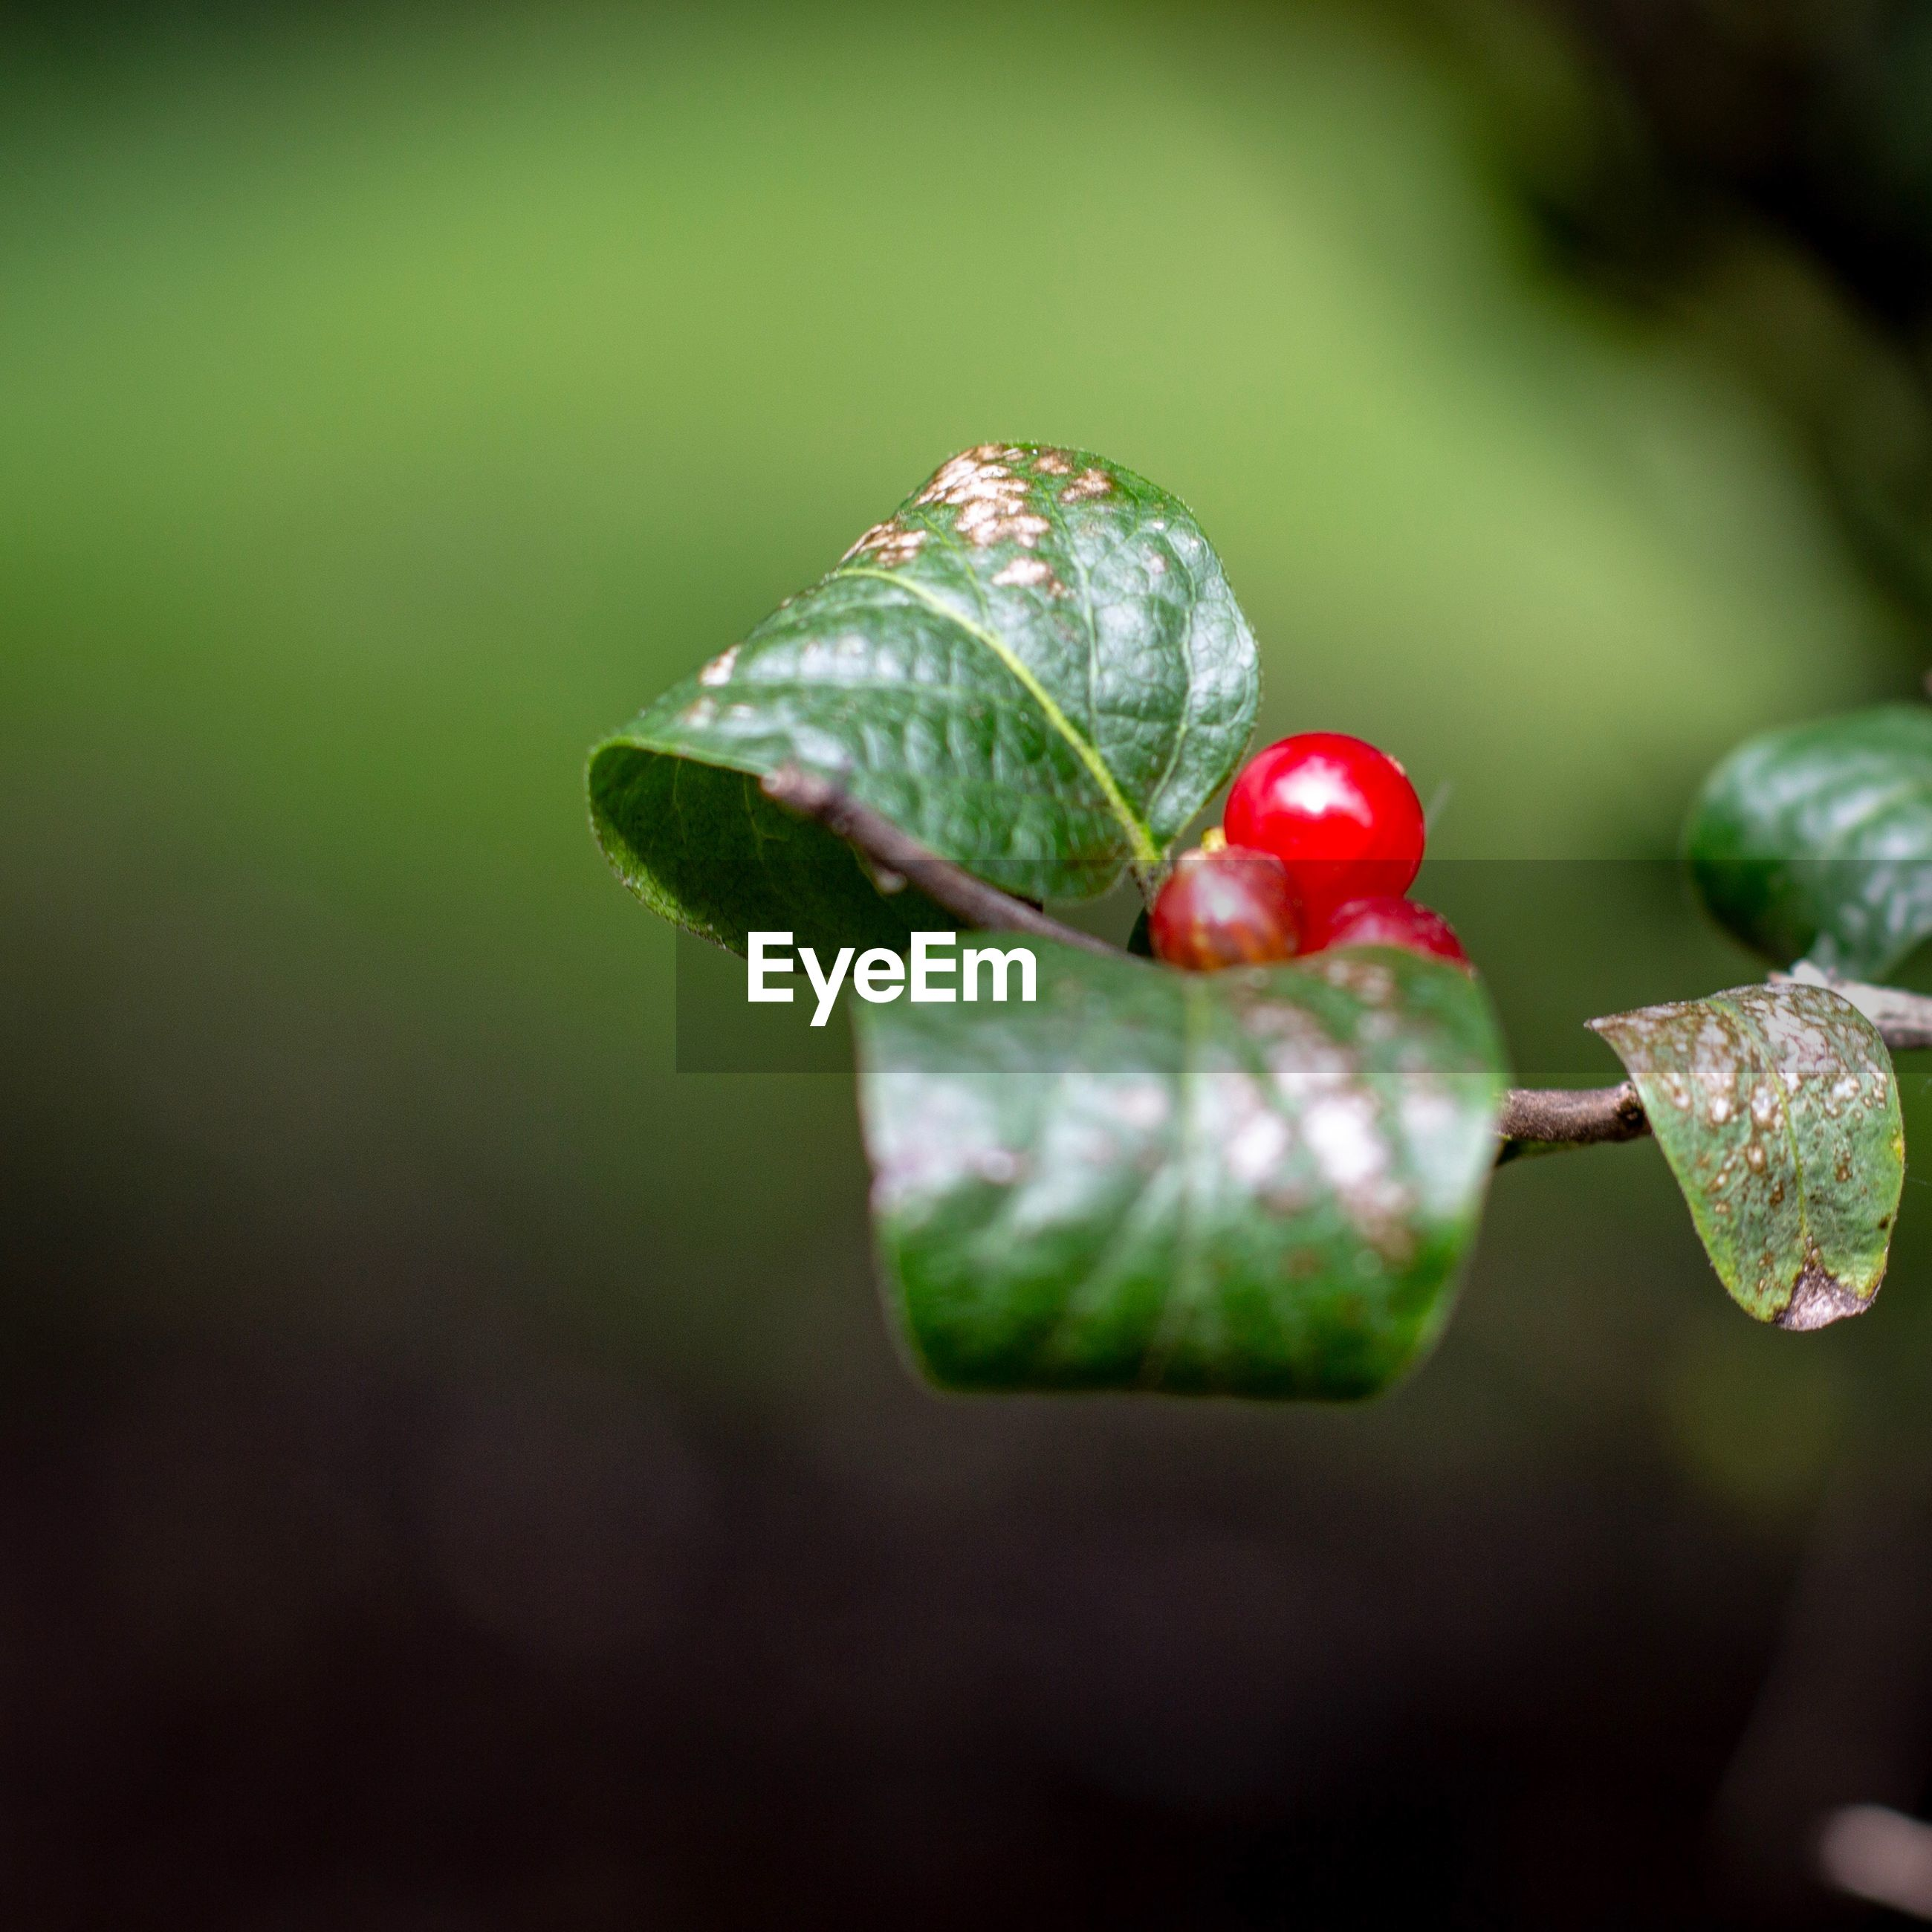 fruit, healthy eating, food and drink, food, freshness, close-up, growth, green color, plant, red, leaf, focus on foreground, no people, plant part, nature, day, beauty in nature, wellbeing, berry fruit, outdoors, ripe